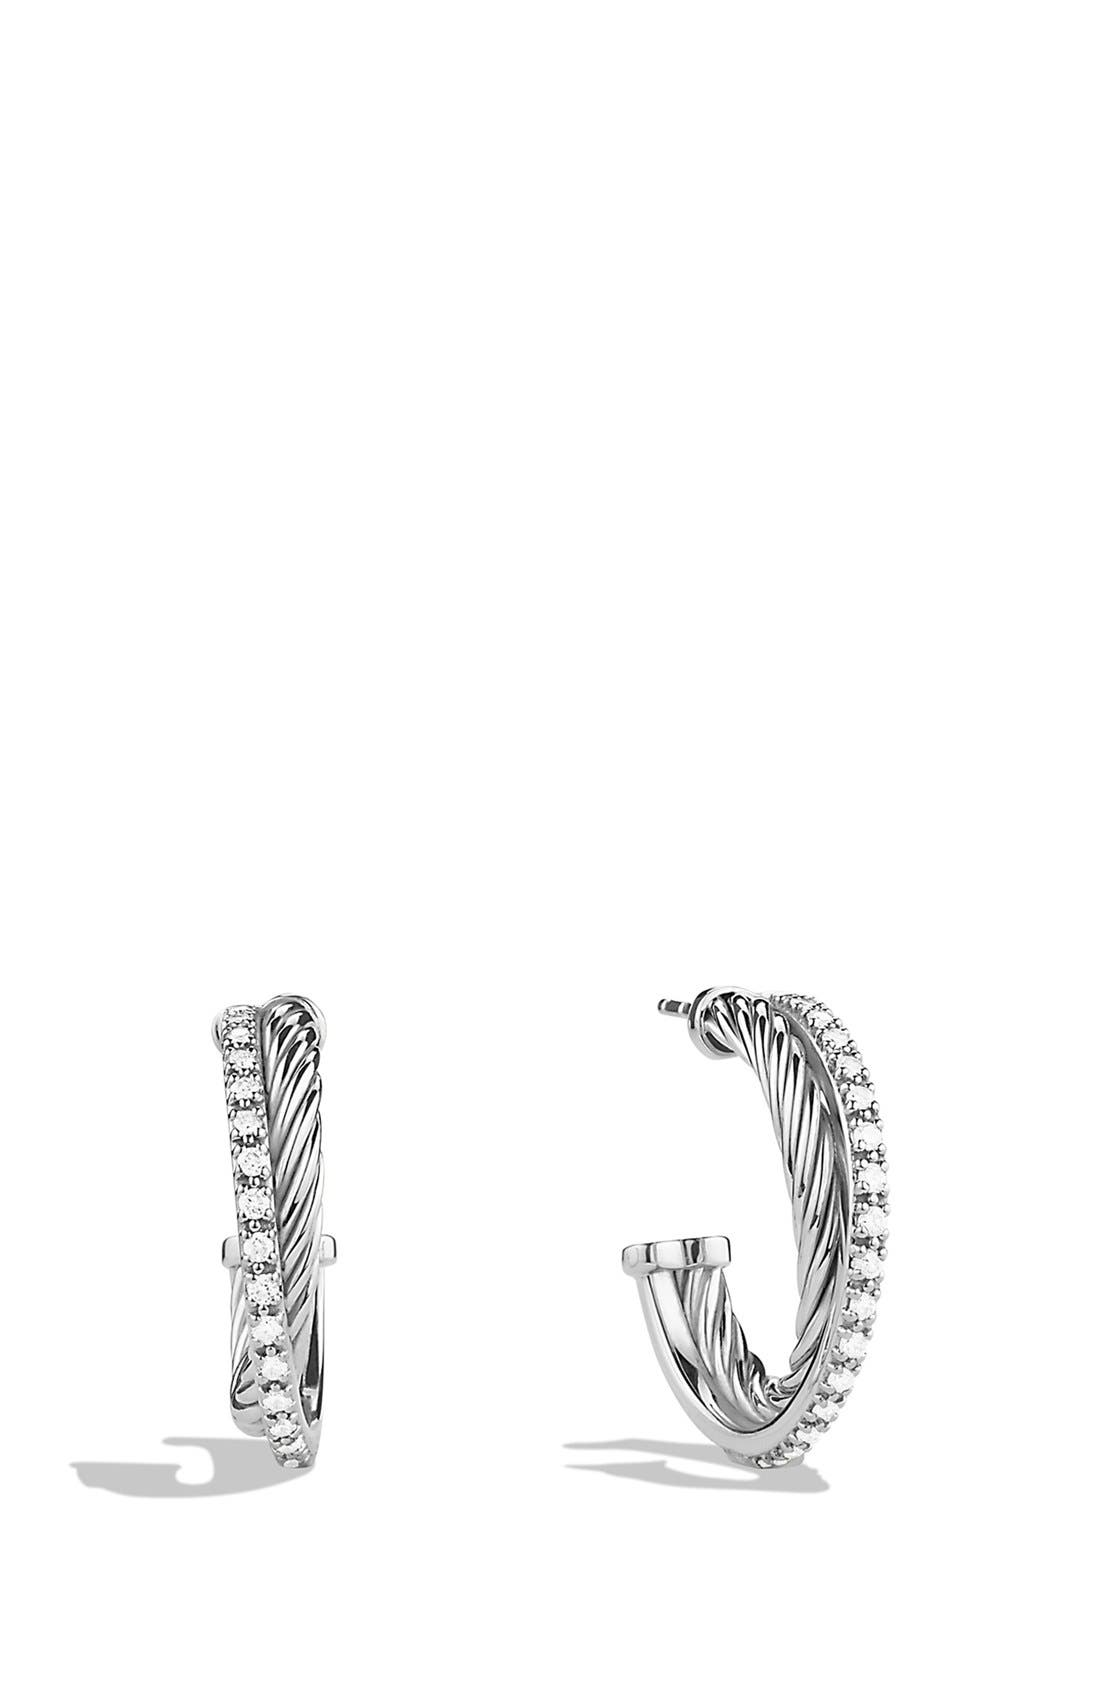 Alternate Image 1 Selected - David Yurman 'Crossover' Small Diamond Hoop Earrings